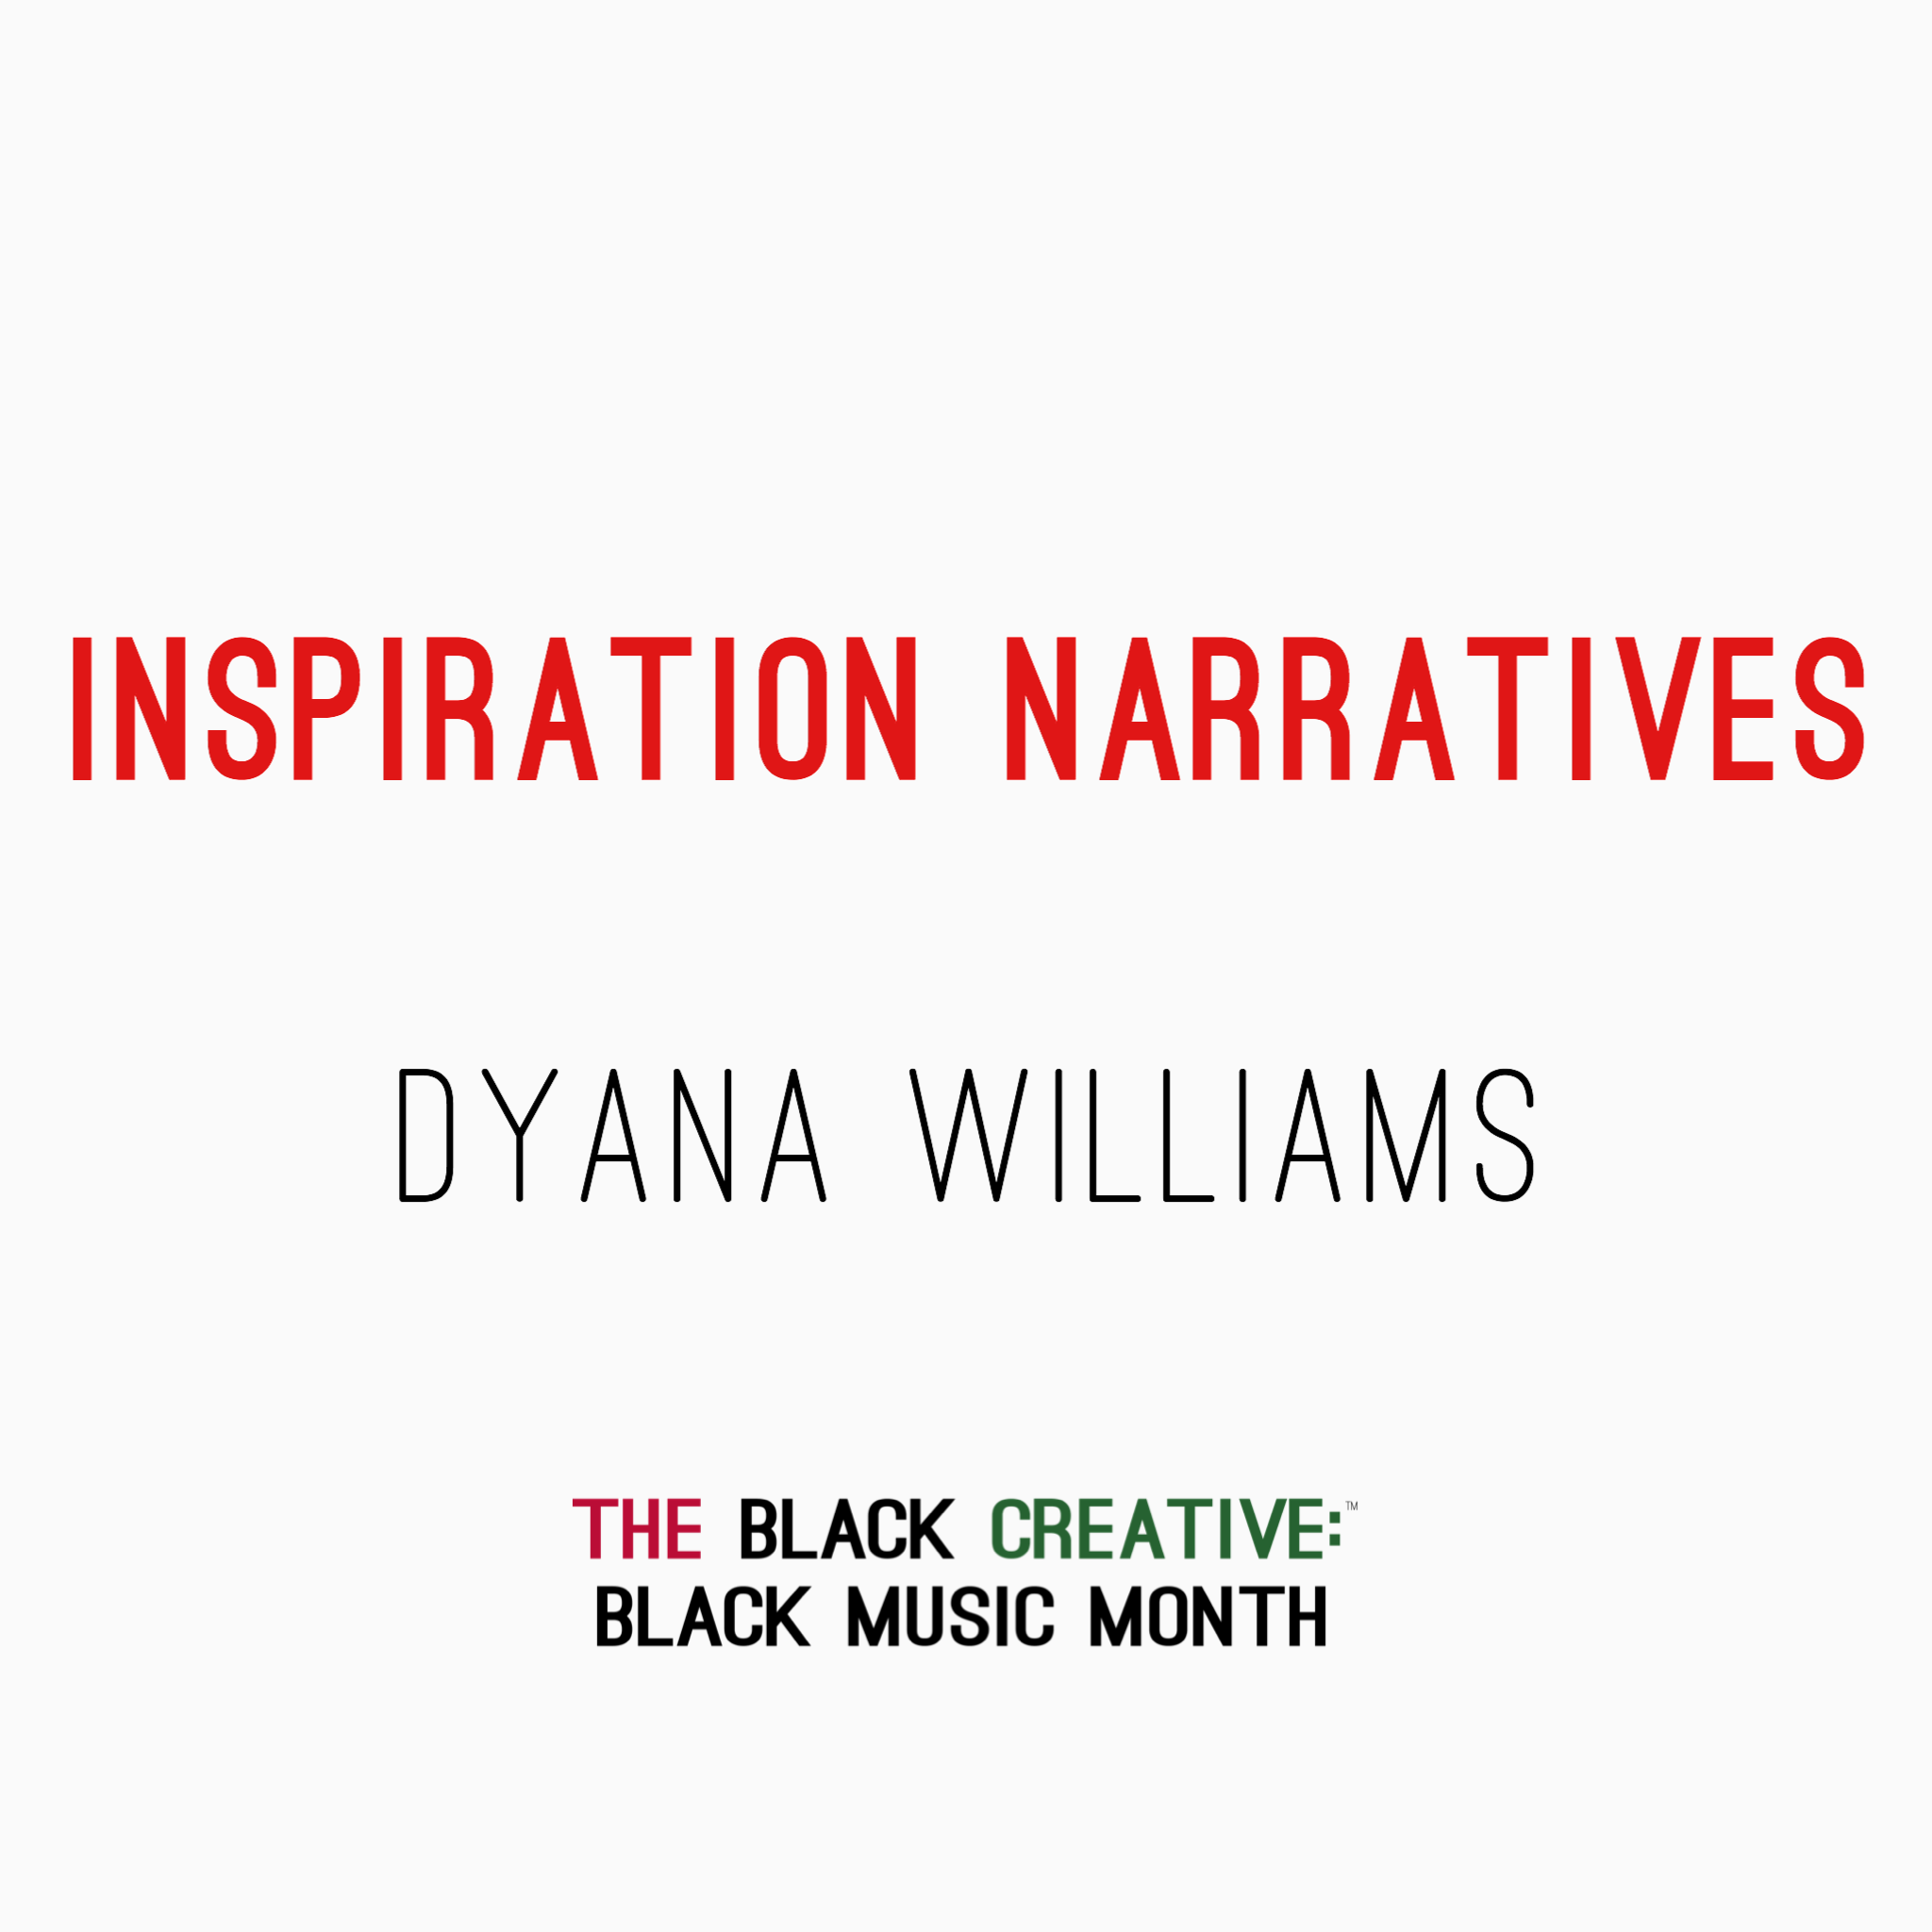 Inspiration Narrative - Dyana Williams